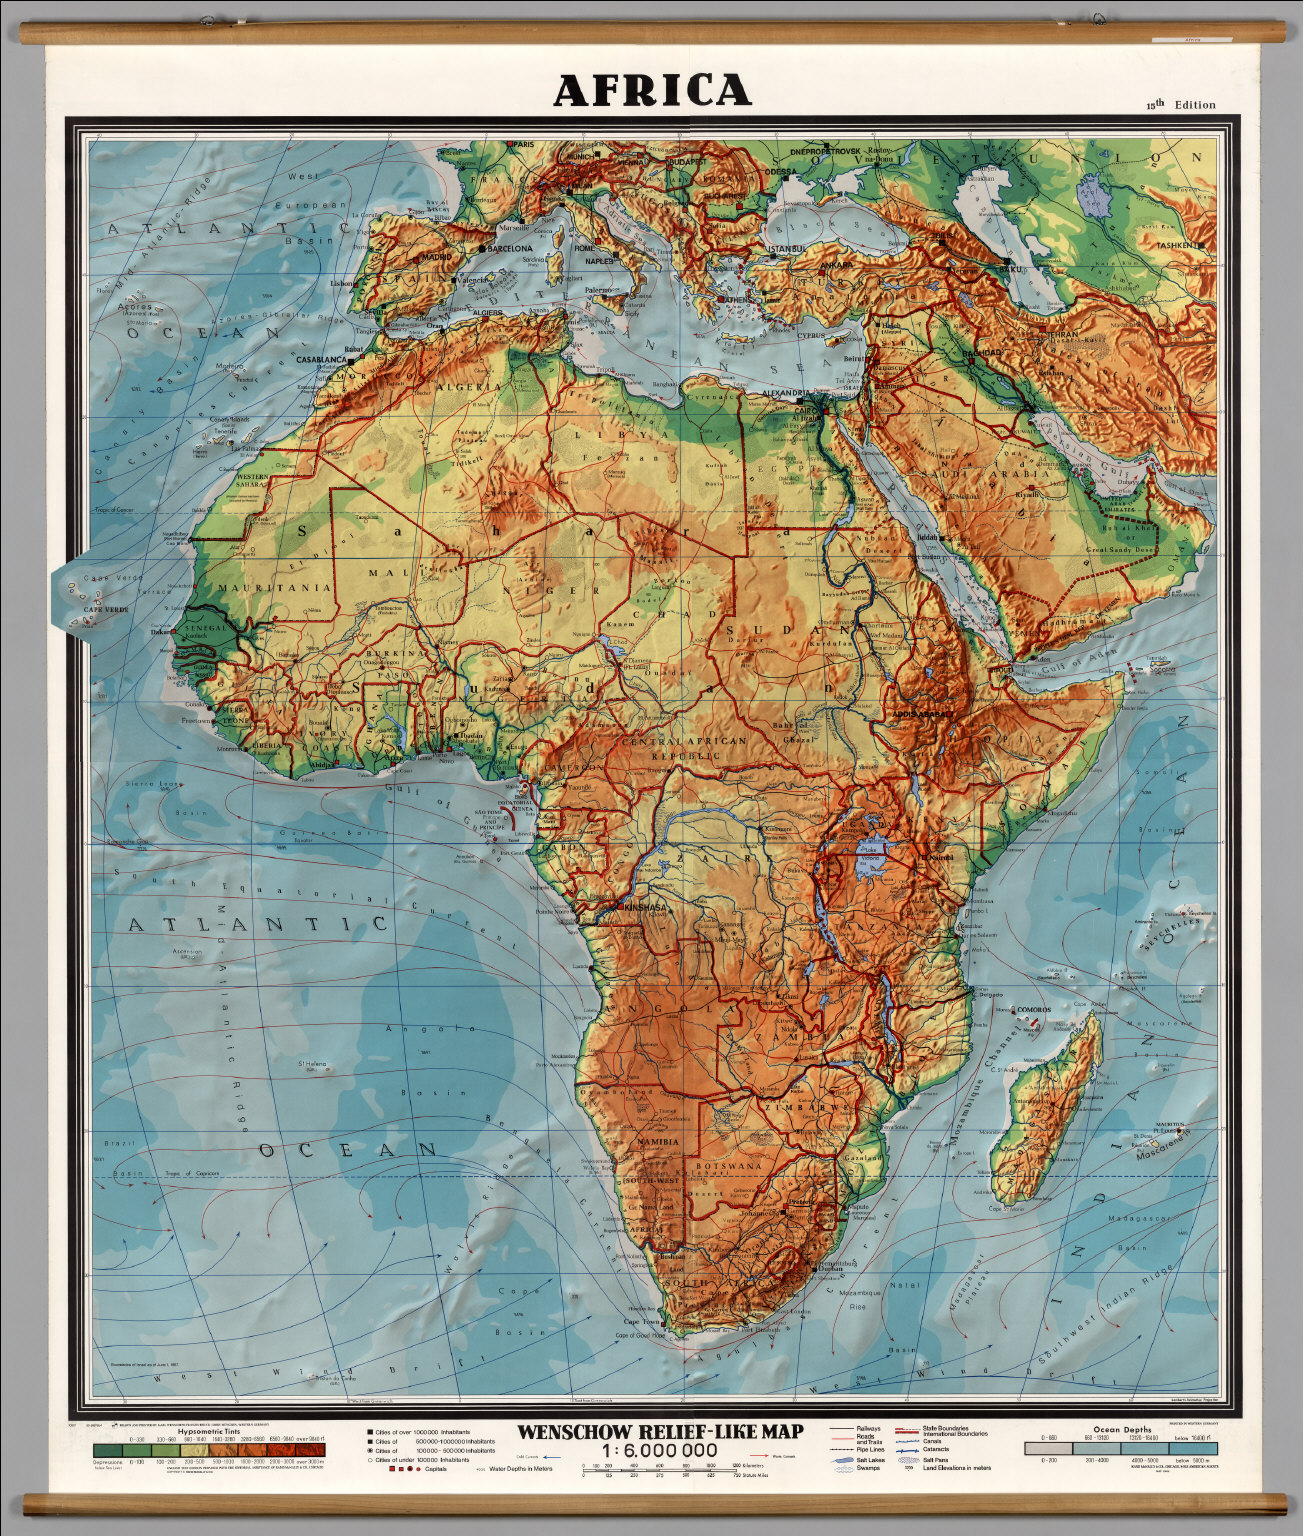 Africa PhysicalPolitical David Rumsey Historical Map Collection